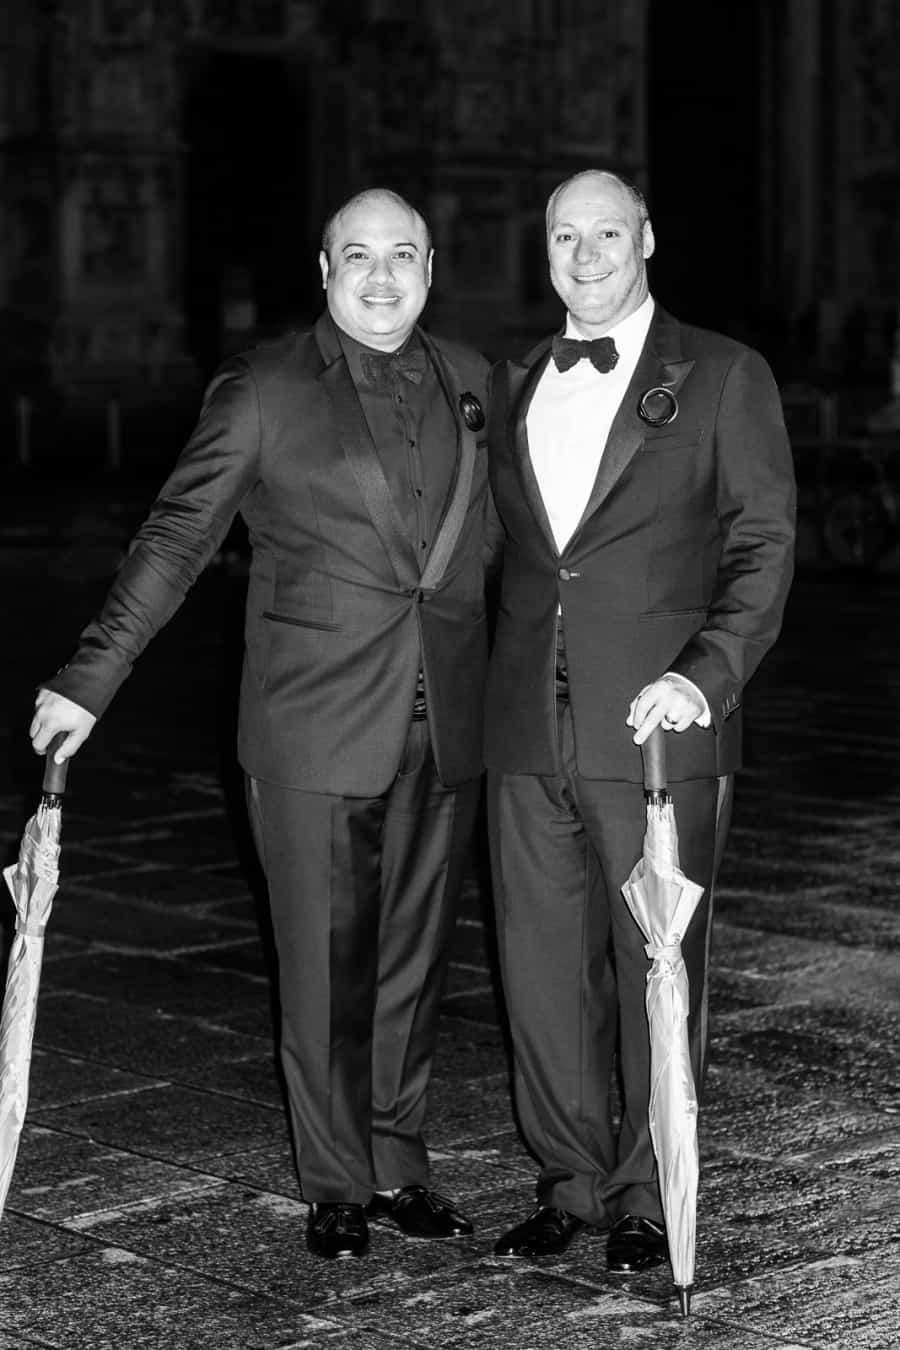 Portrait of the grooms at the end of the night after gay wedding in Italy